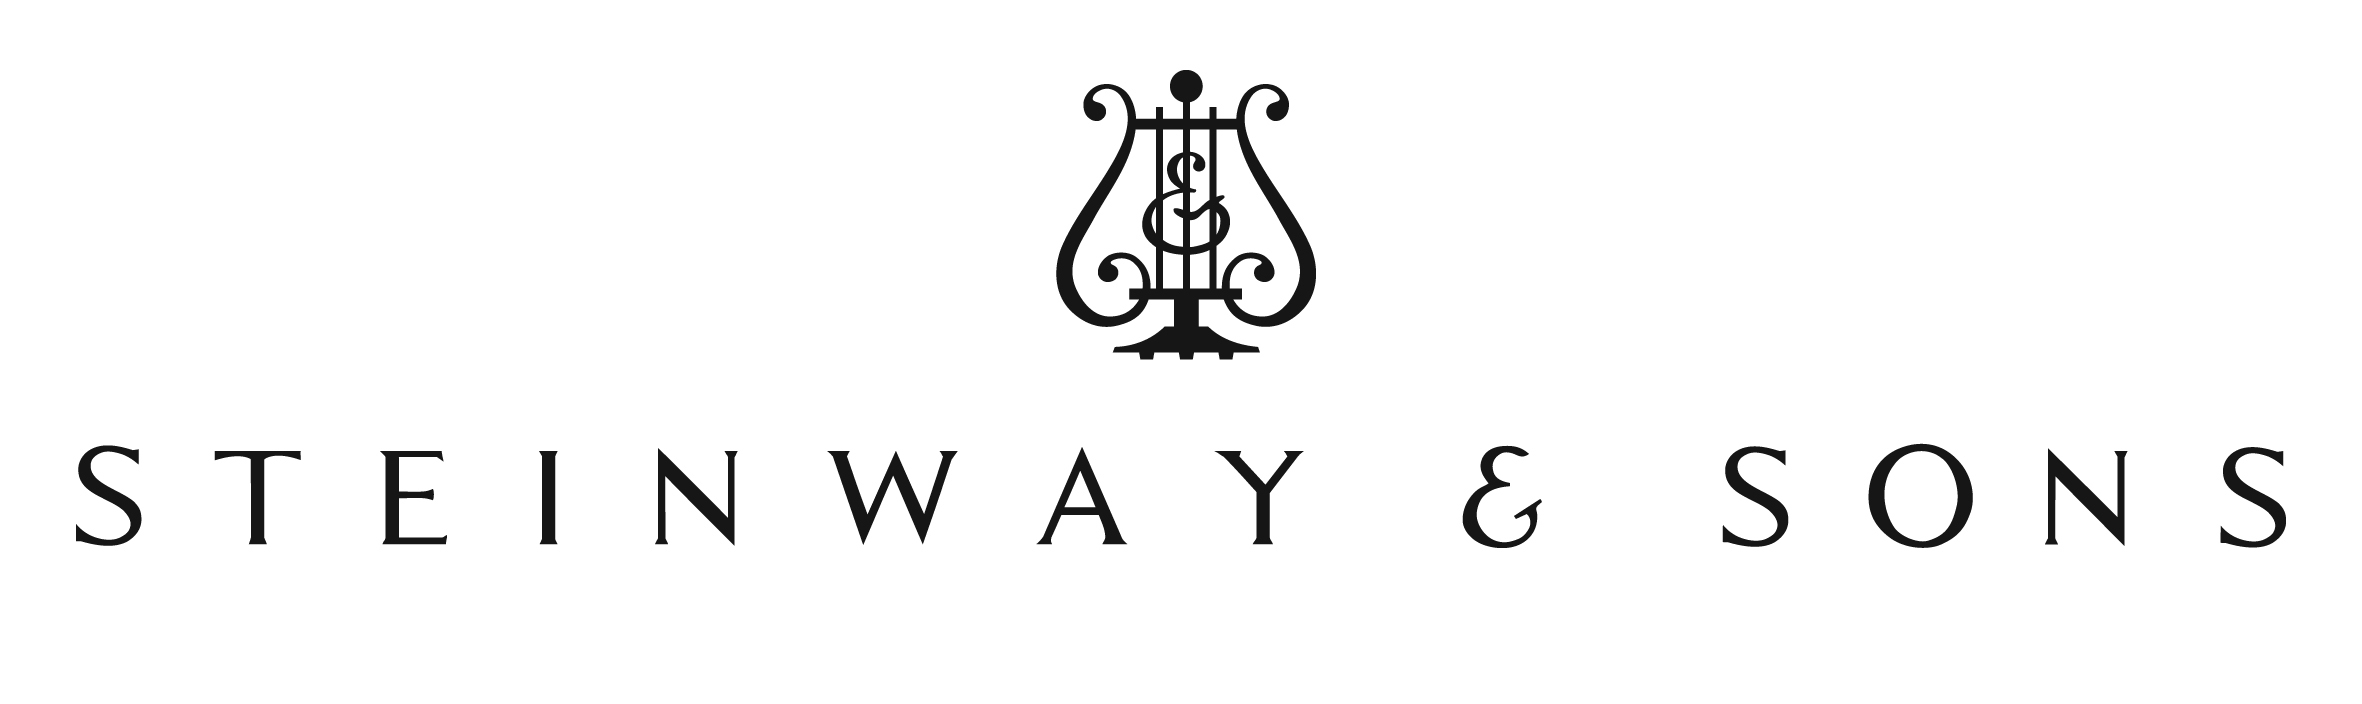 Steinway Sons BW logo High Resolution